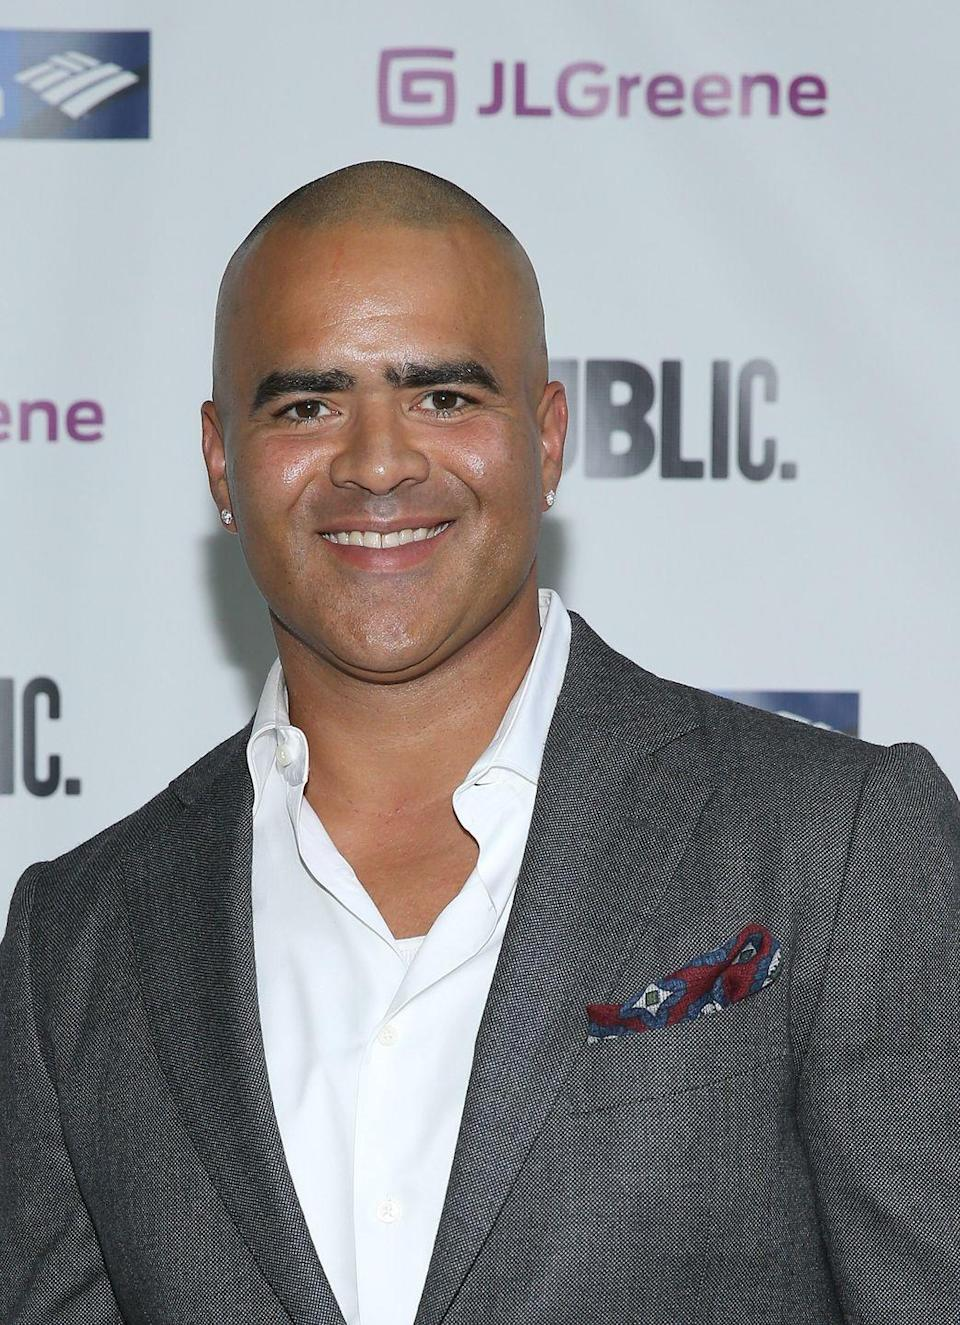 <p>Jackson has worked with Miranda before <em>In The Heights</em> became a Tony-award play (he played Benny, a local dispatcher who crushes on Nina in the original adaption). So, it's no surprise that many of his current roles have been with famed the playwright—<em>Hamilton</em> and <em>Moana</em>. Other than his projects on Broadway, Jackson has appeared in numerous TV shows, including the CBS procedural drama <em>Bull. </em></p>